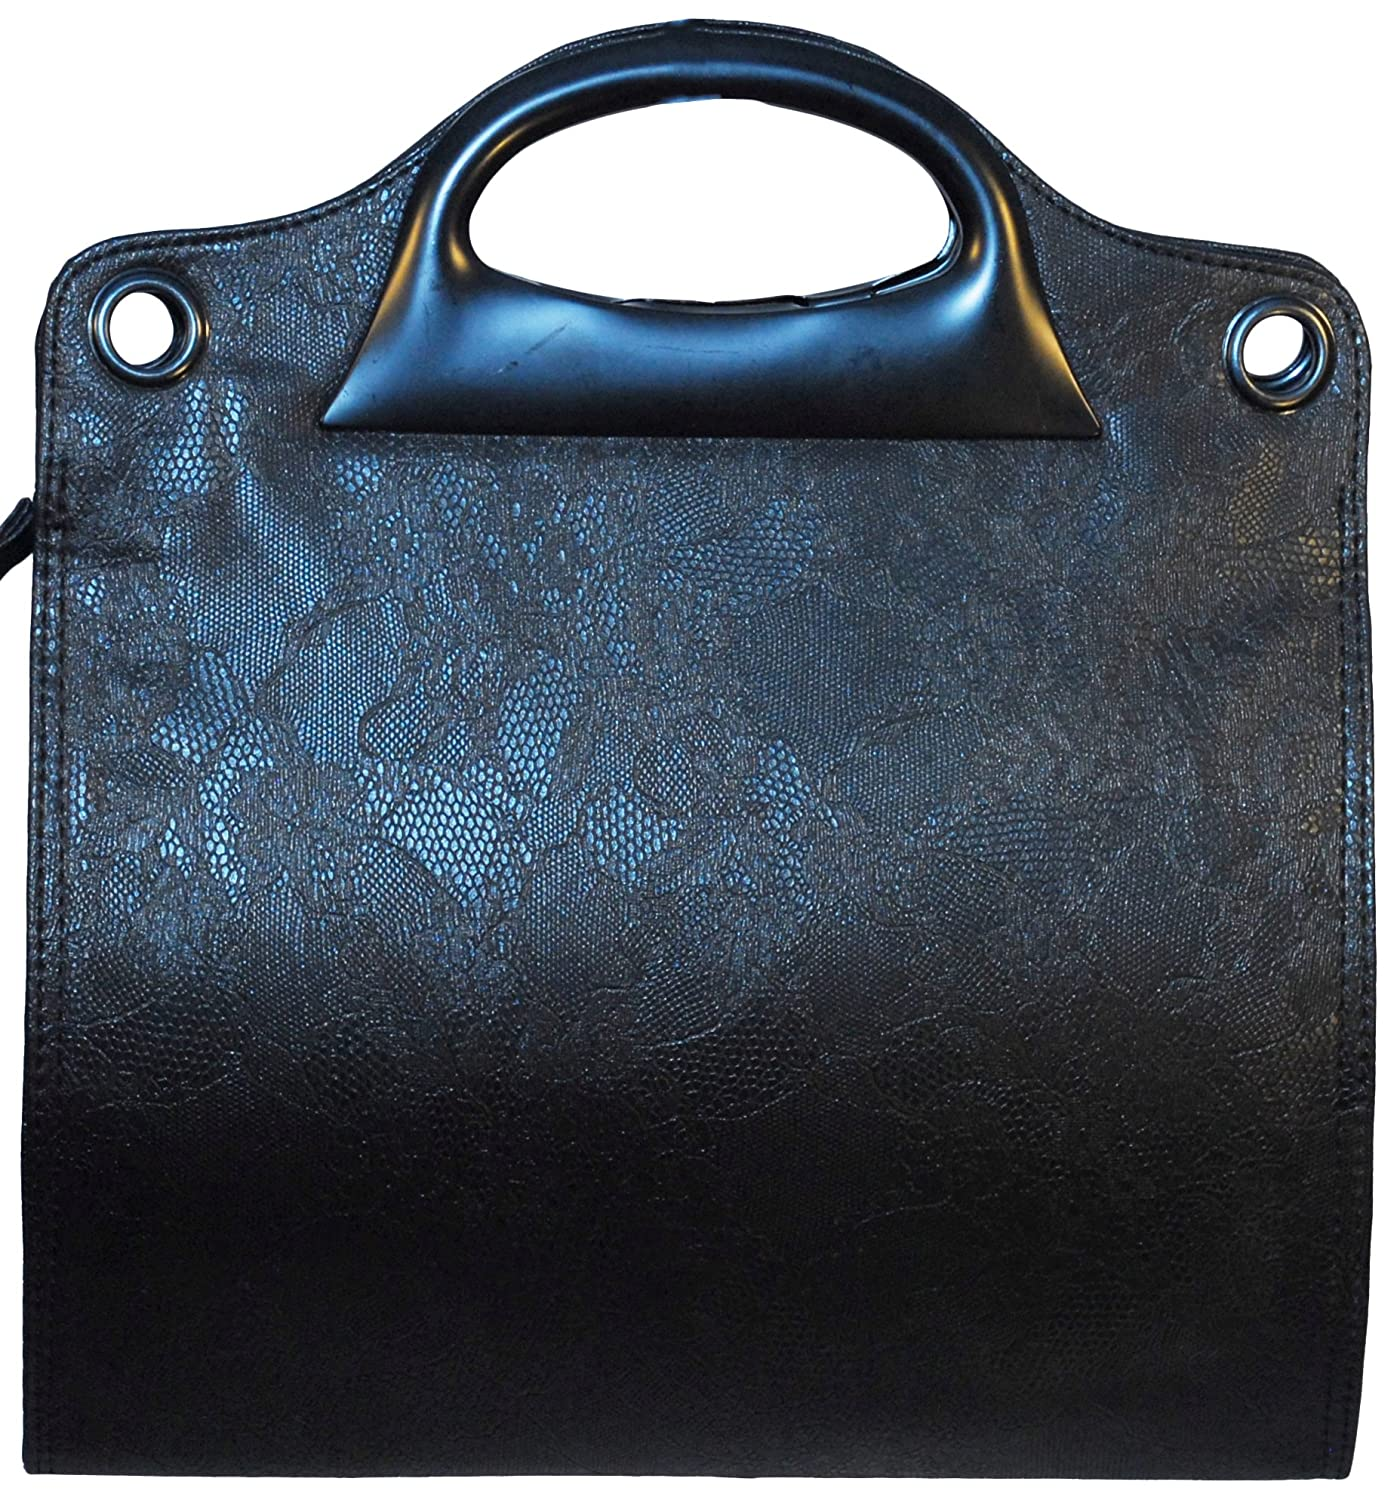 """High Quality Luciano Caruso Womens' Designer Handbag. Stitched Vegan Leather. Adjustable Detachable 41"""" Strap. Adjustable Width. Pockets, Zippers, Compartments and More."""